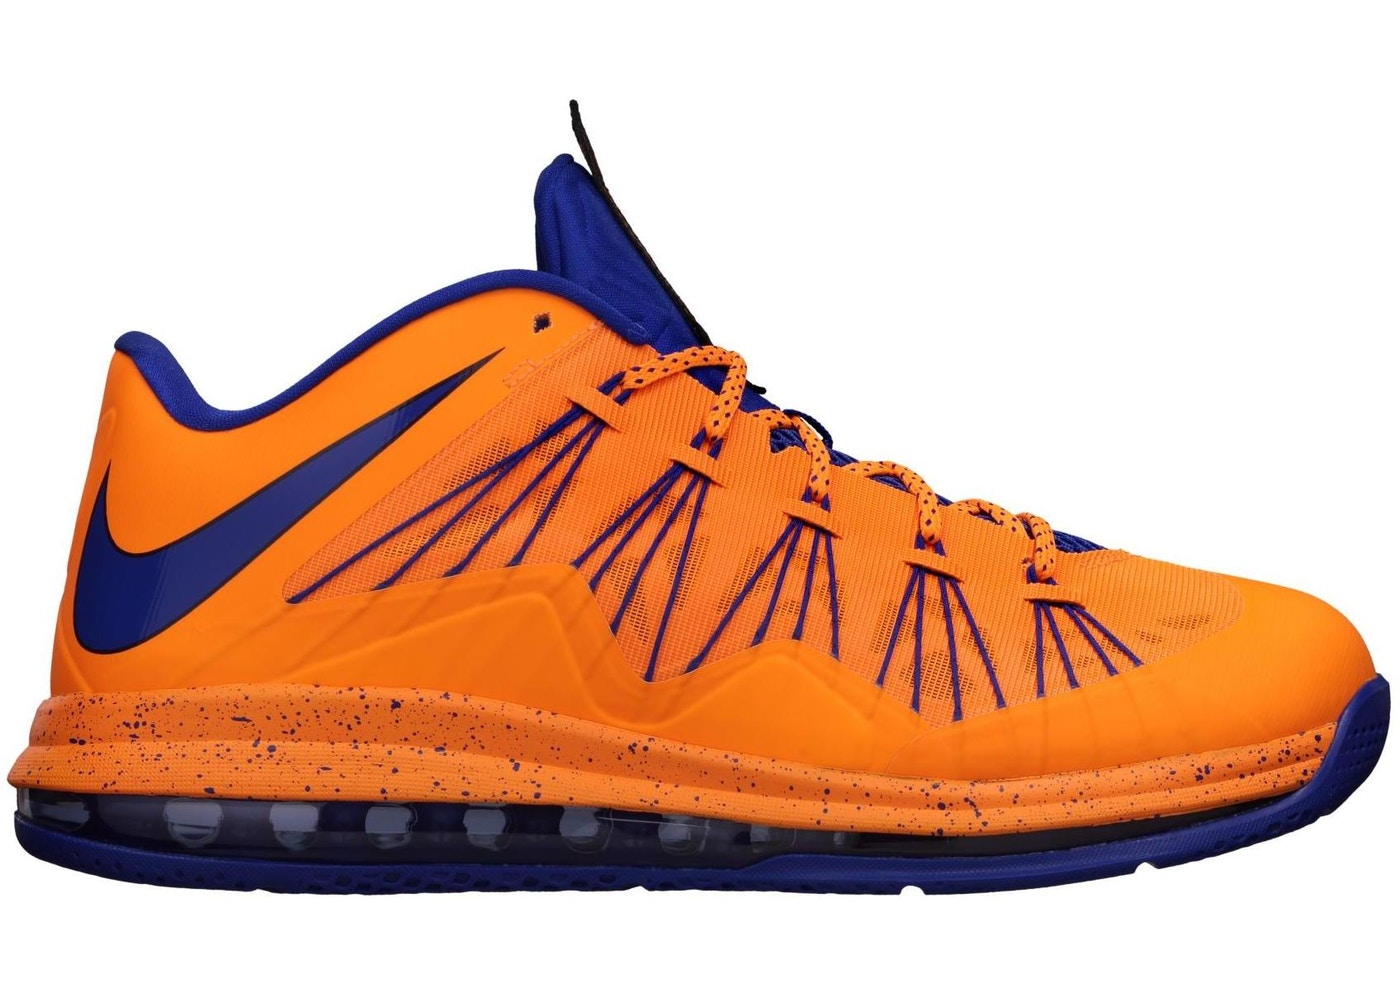 new style 5a51c b8262 LeBron X Low Knicks HWC